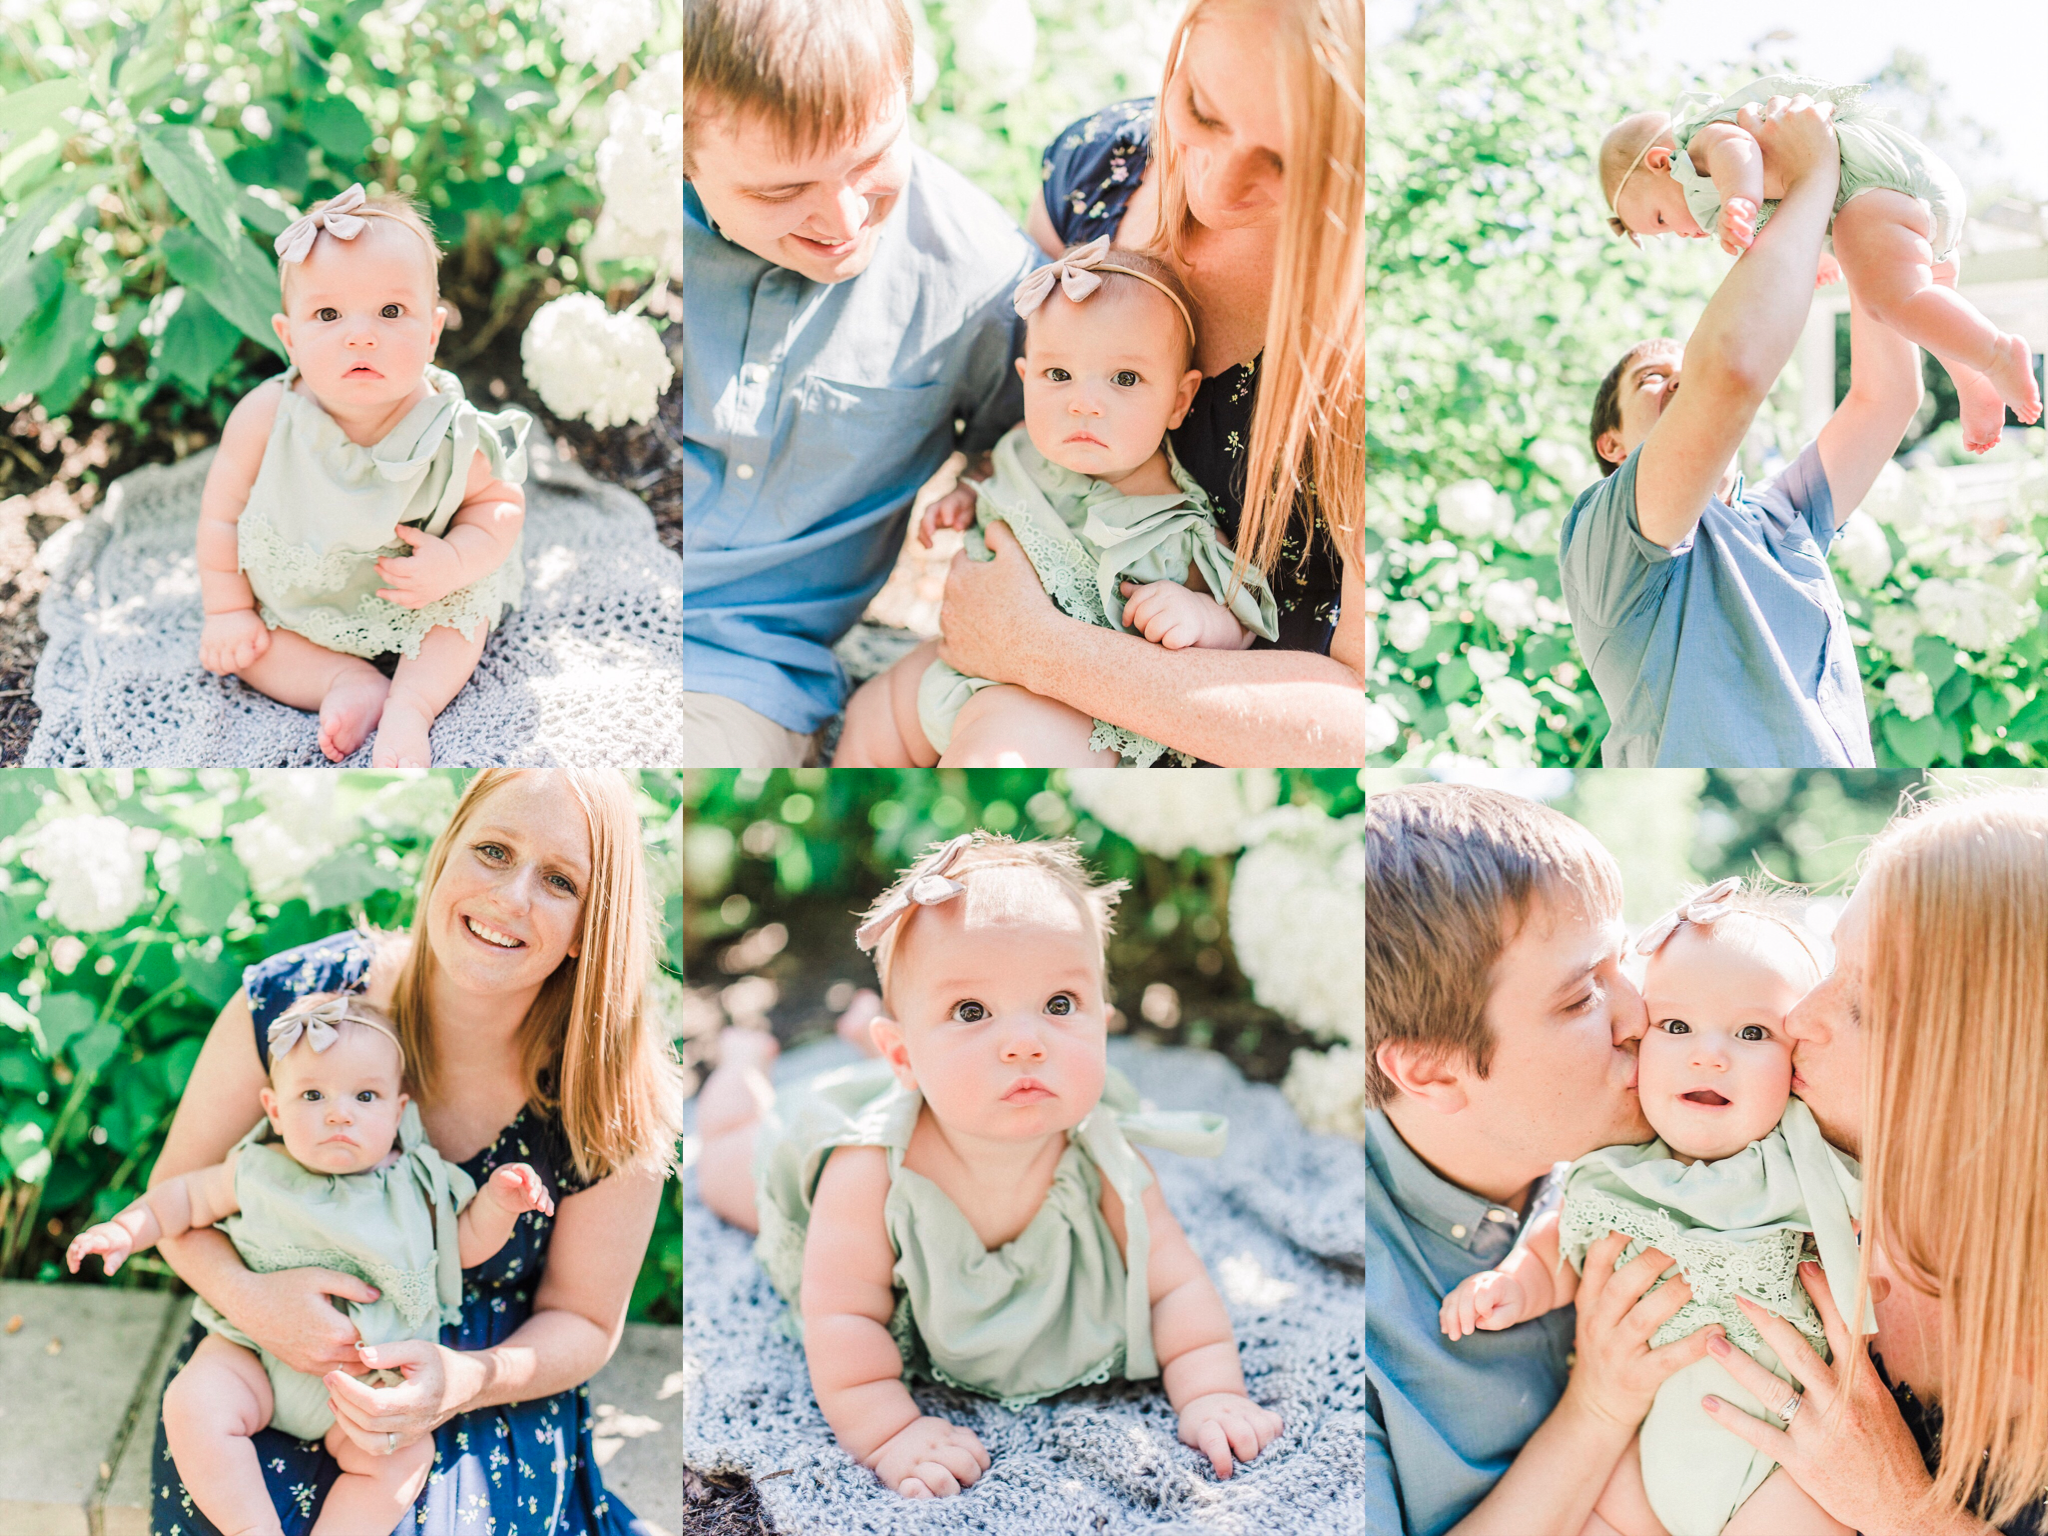 The Moon Family | Bright Summer Morning Portraits Celebrating a 6 Month Milestone | Carmel Indiana Family Photographer